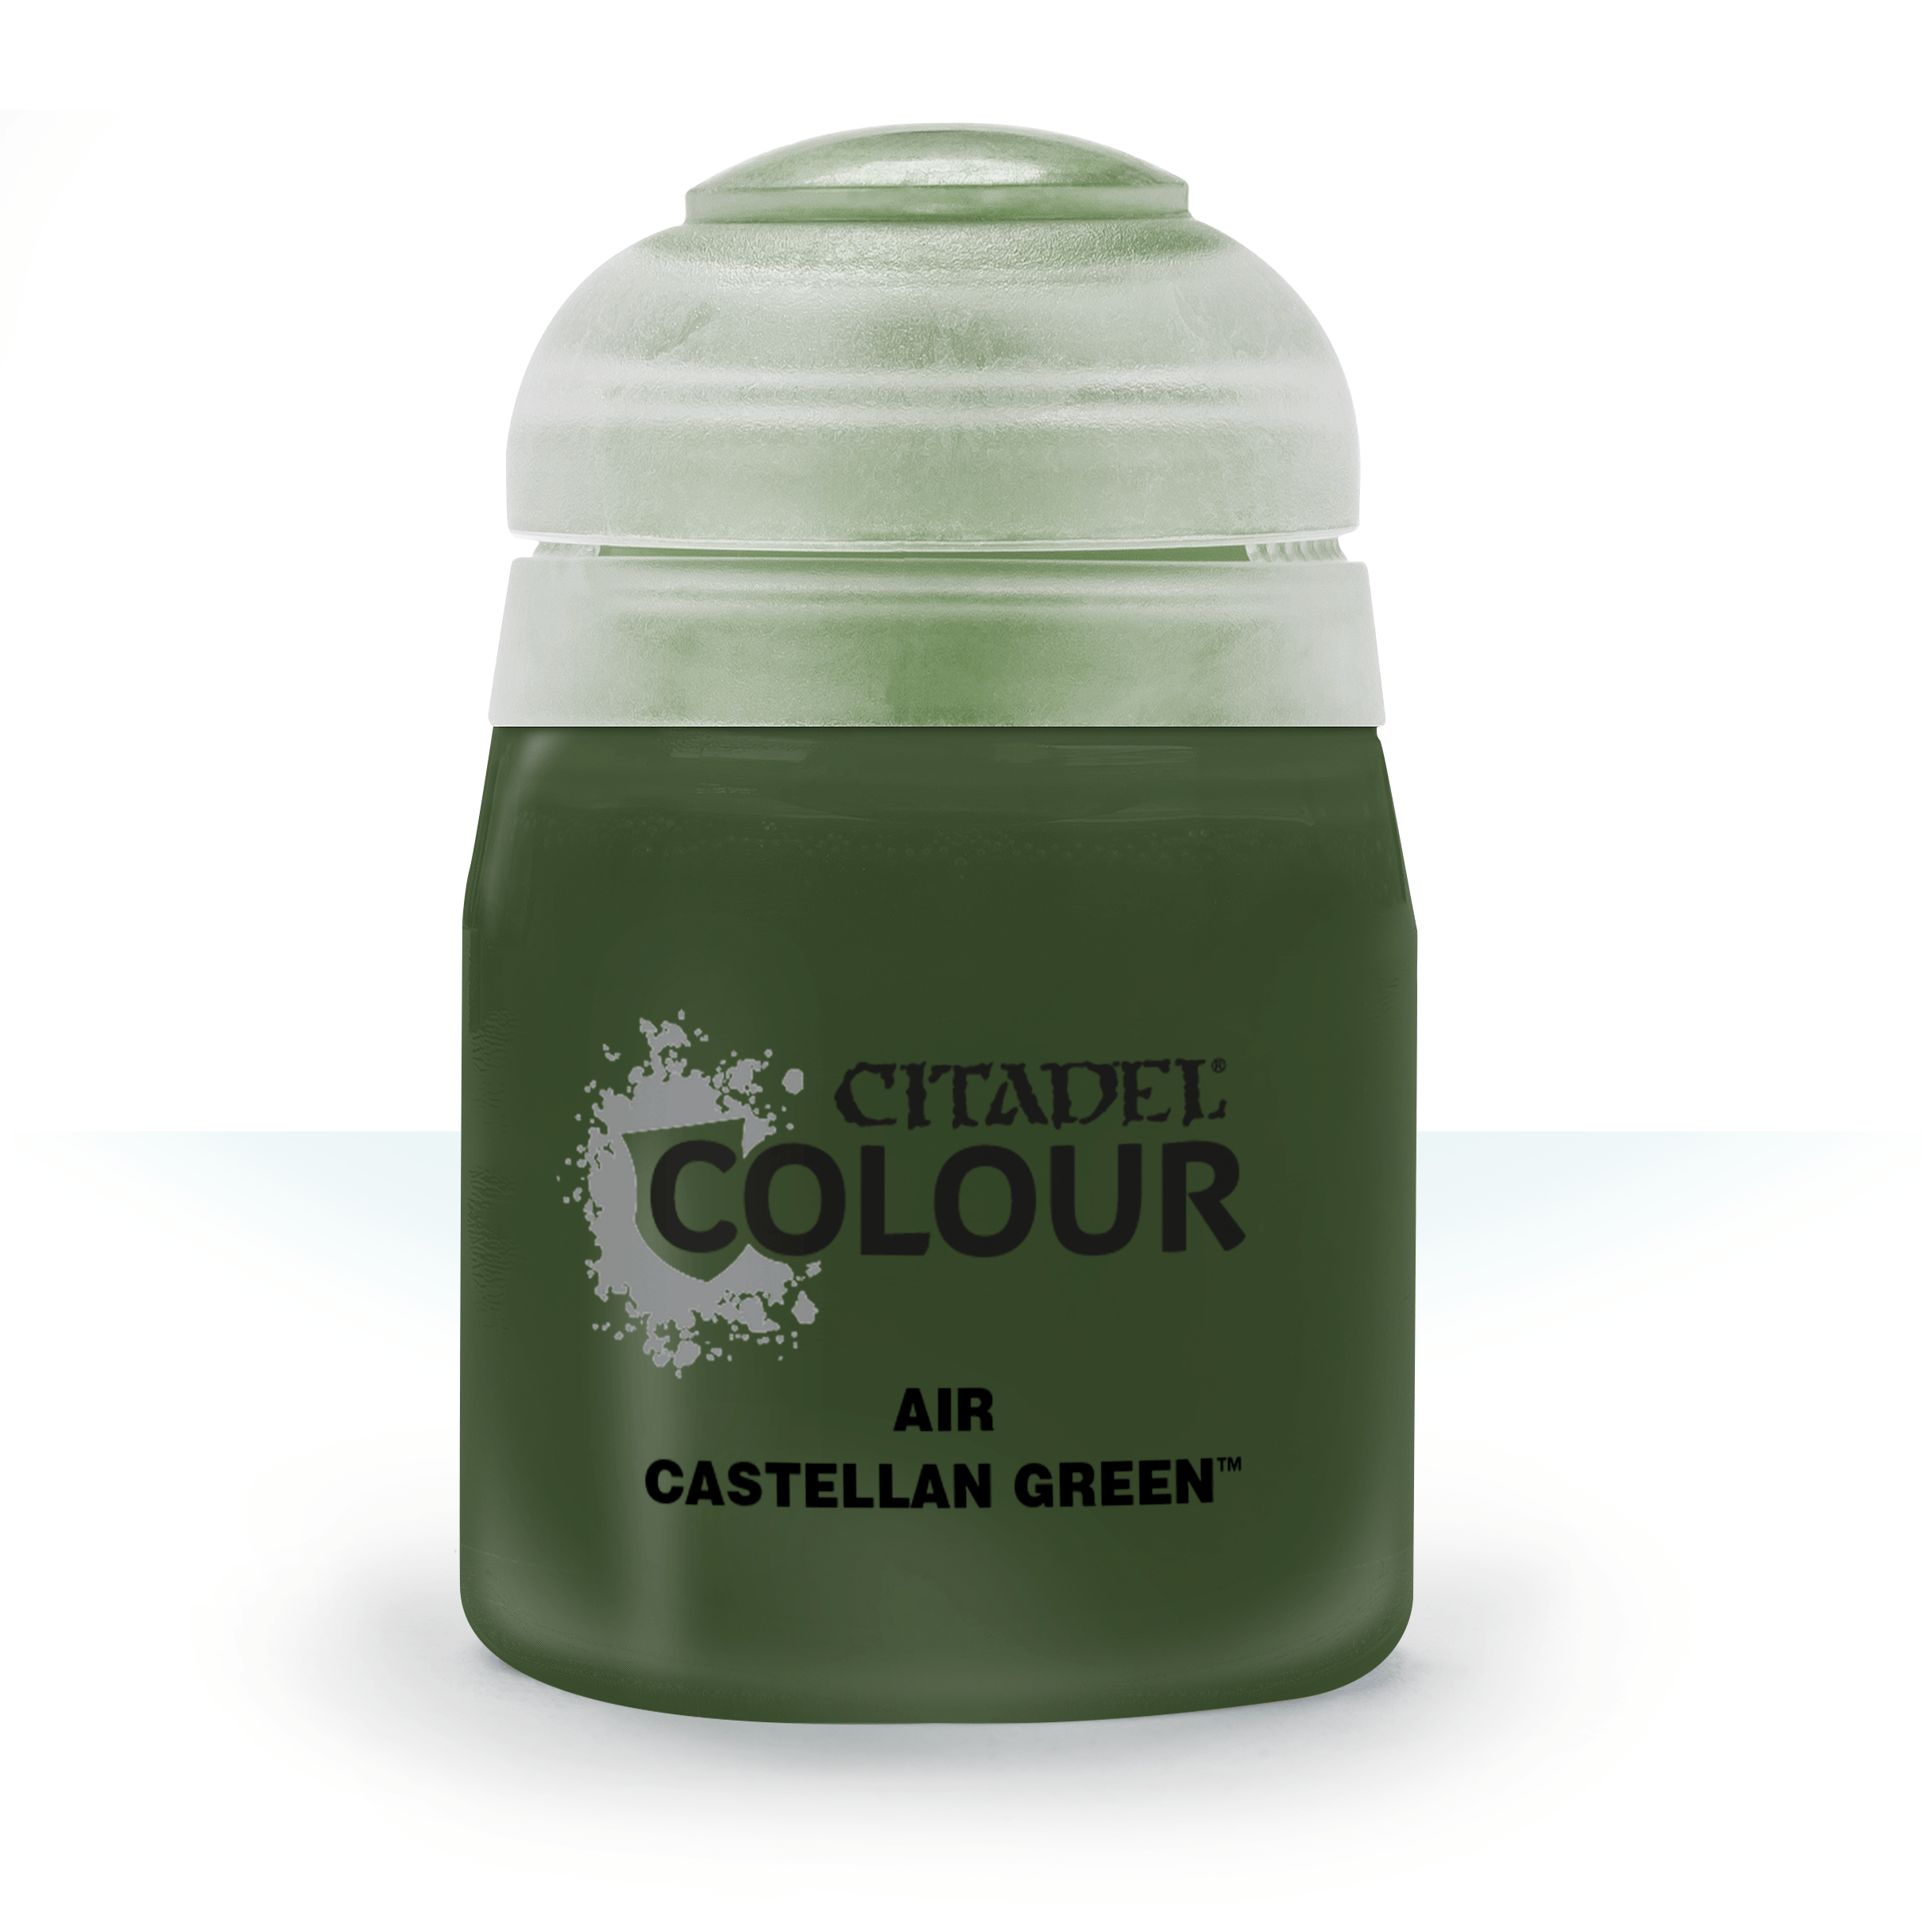 Citadel Airbrush Paints: Castellan Green Air (24ML)